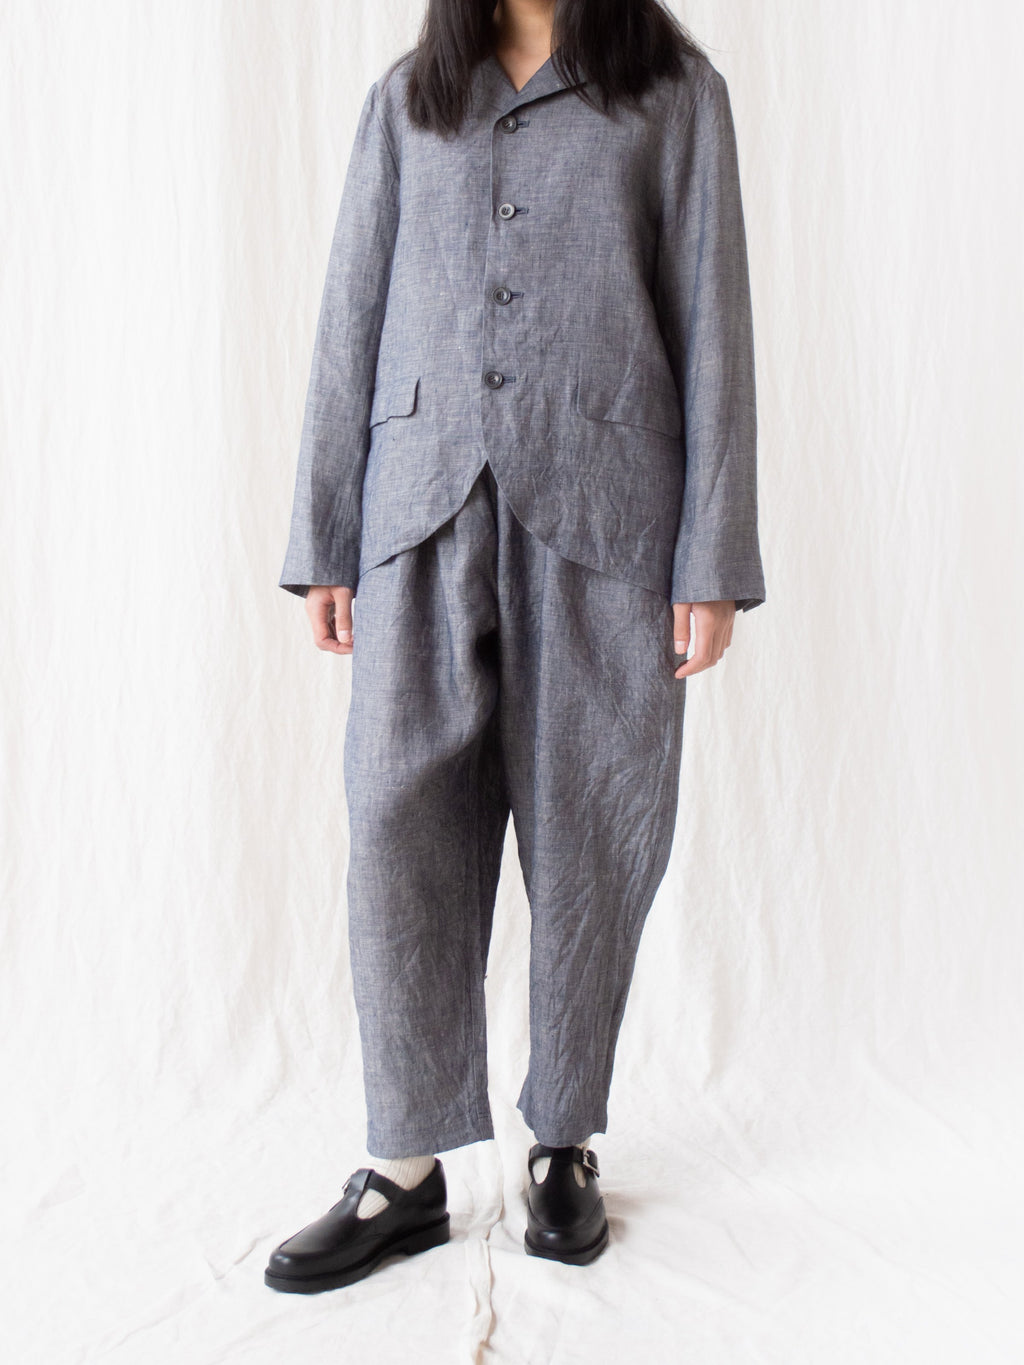 Namu Shop - Ichi Antiquites Linen Dungaree Jacket - Washed Navy